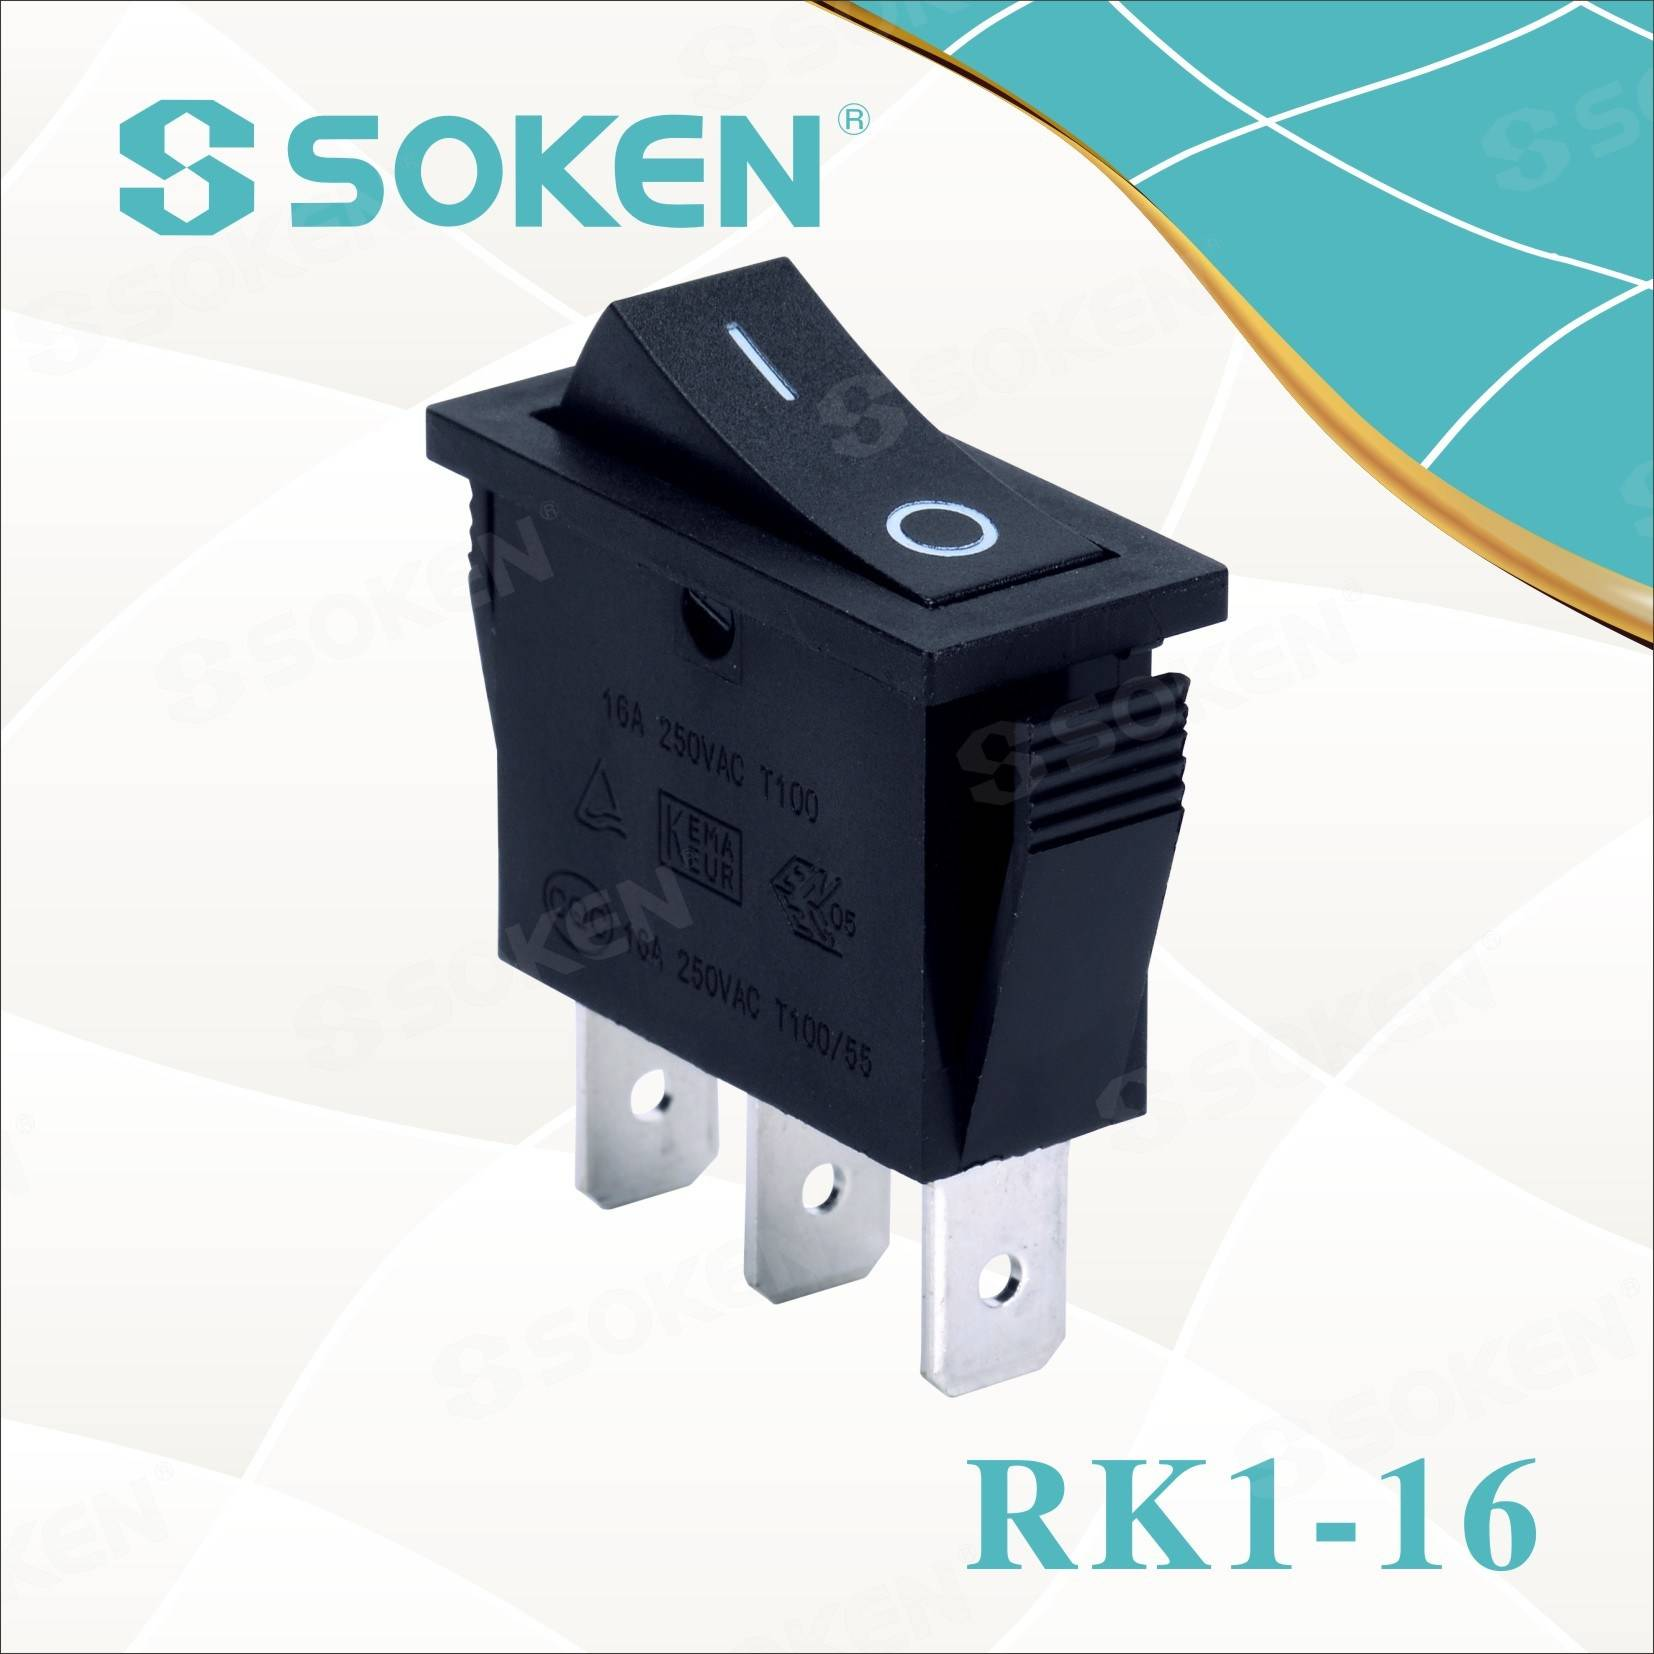 Soken Rk1-16 1X2 li ser Rocker Switch